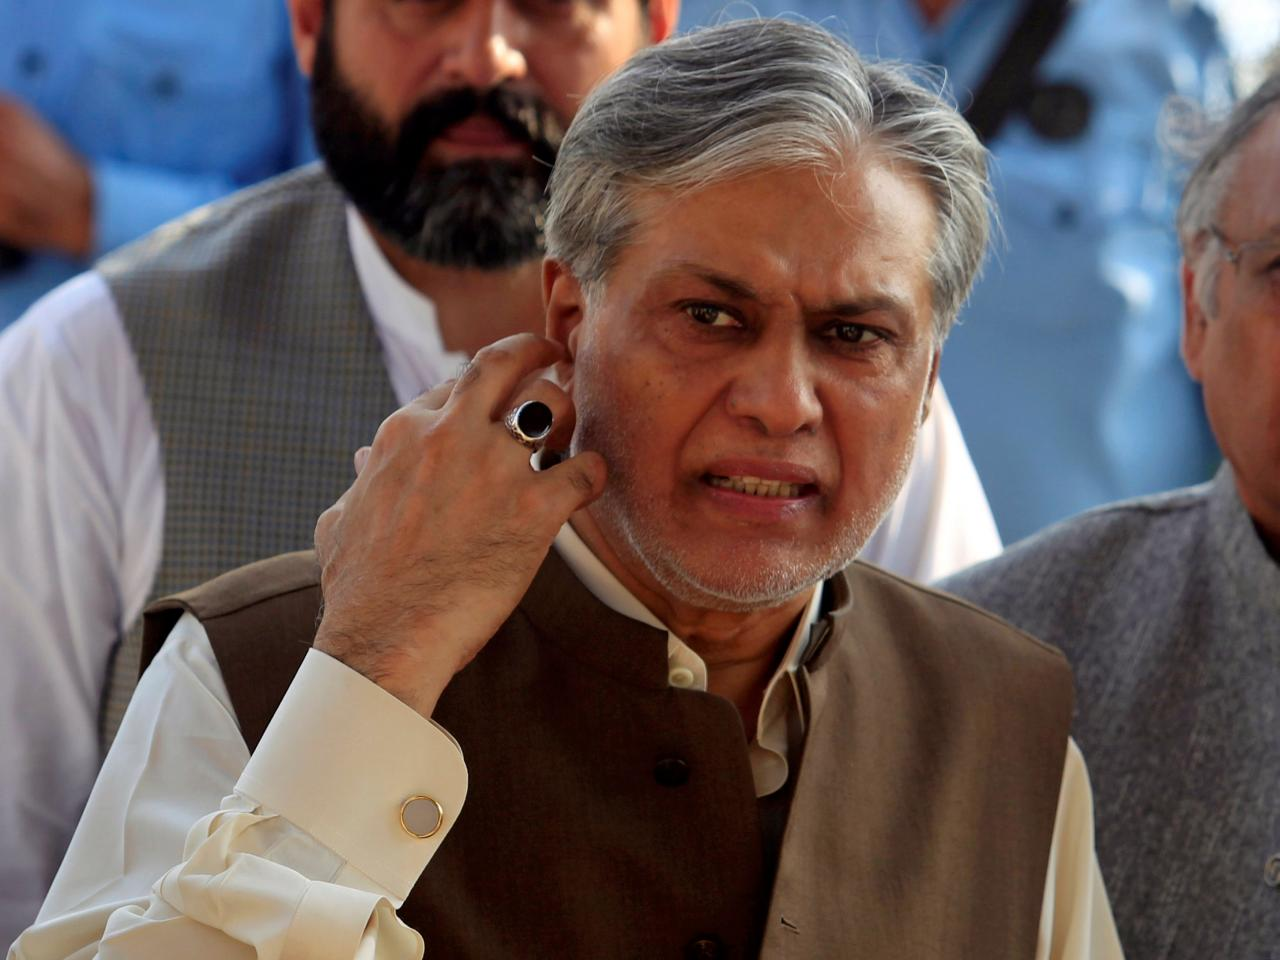 pakistans-finance-minister-ishaq-dar-is-seen-after-a-party-meeting-in-islamabad-2-2-2-2-2-3-4-2-2-3-2-2-2-2-2-2-2-2